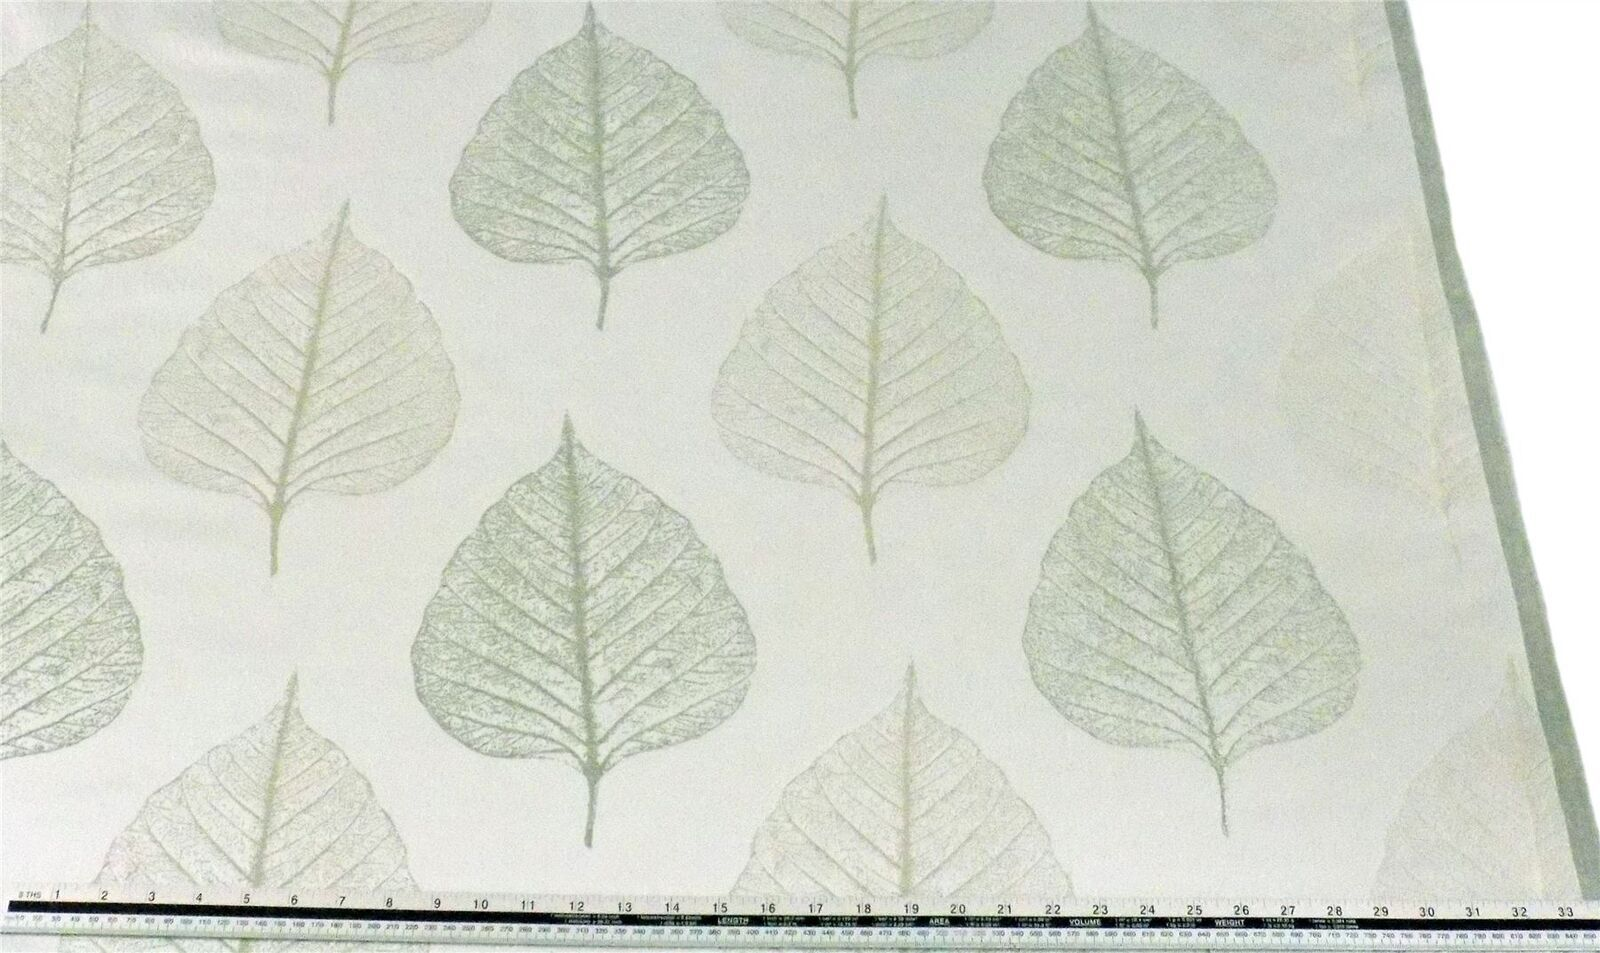 Slub Effect Silver Cream Embroidered Leaf Leaves Fabric Material 2 Sizes